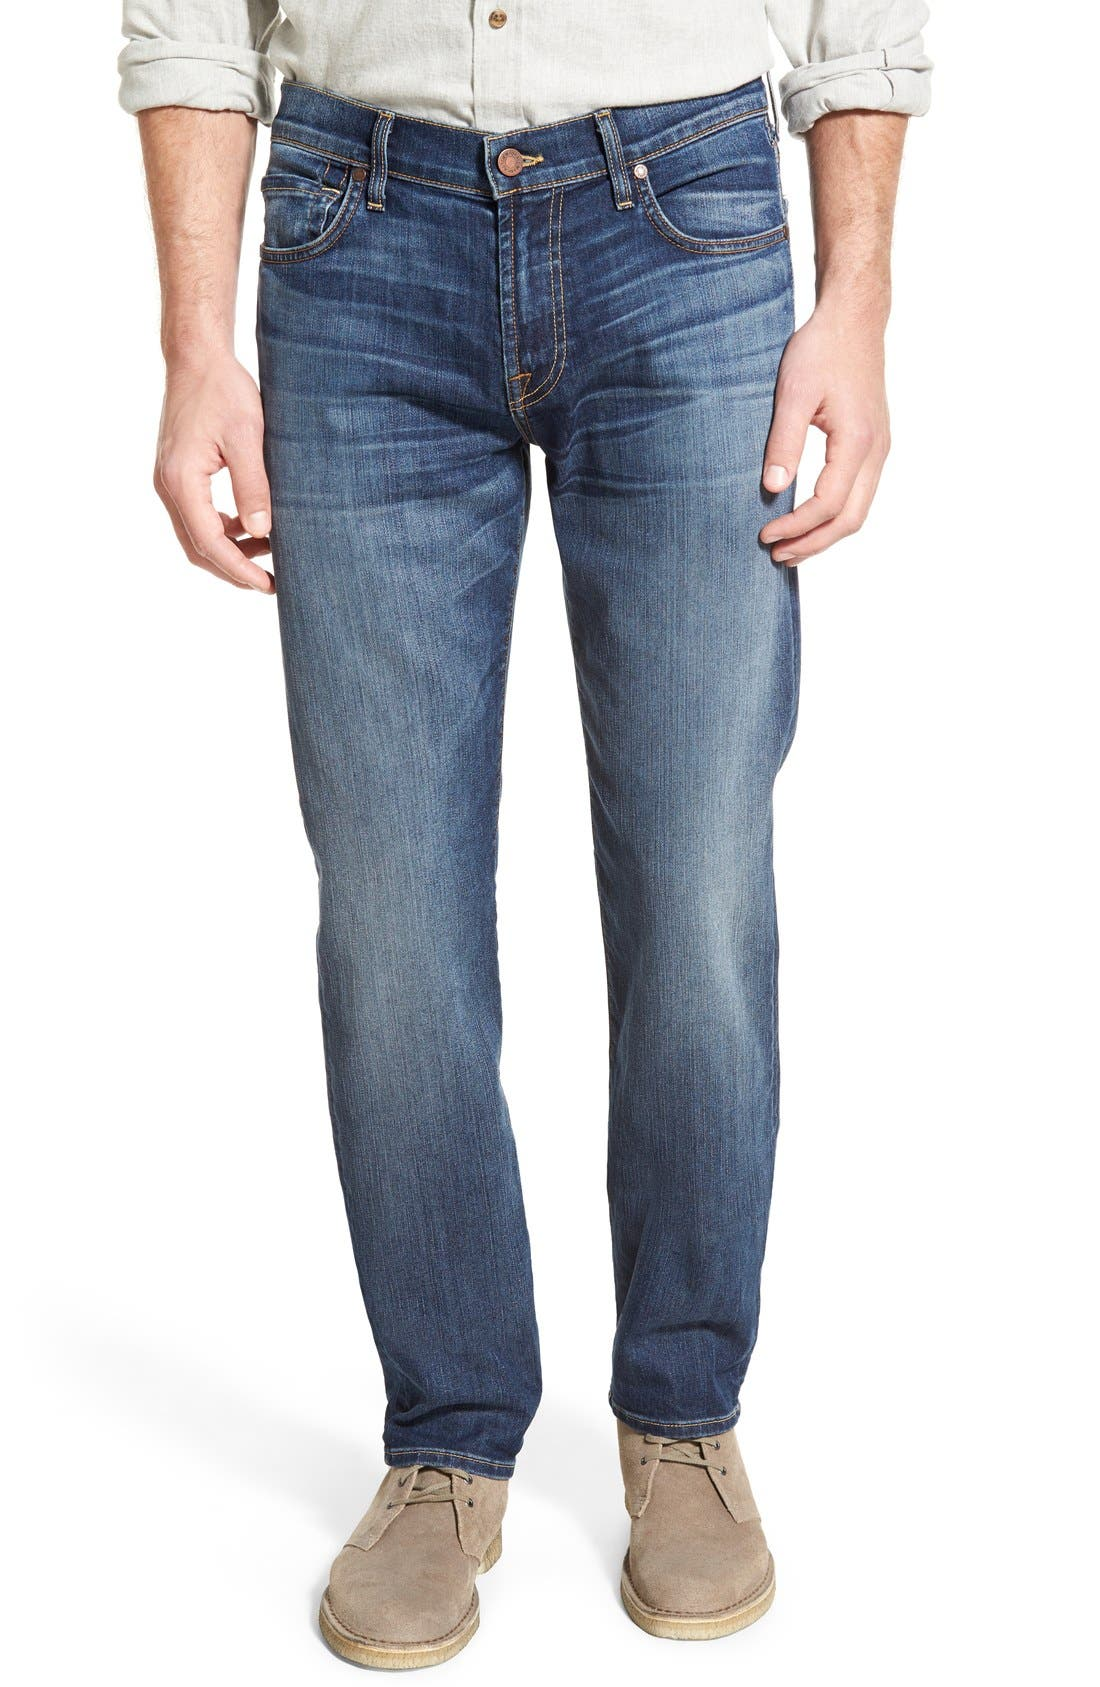 'Slimmy - Luxe Performance' Slim Fit Jeans,                             Main thumbnail 1, color,                             Air Weft Commotion